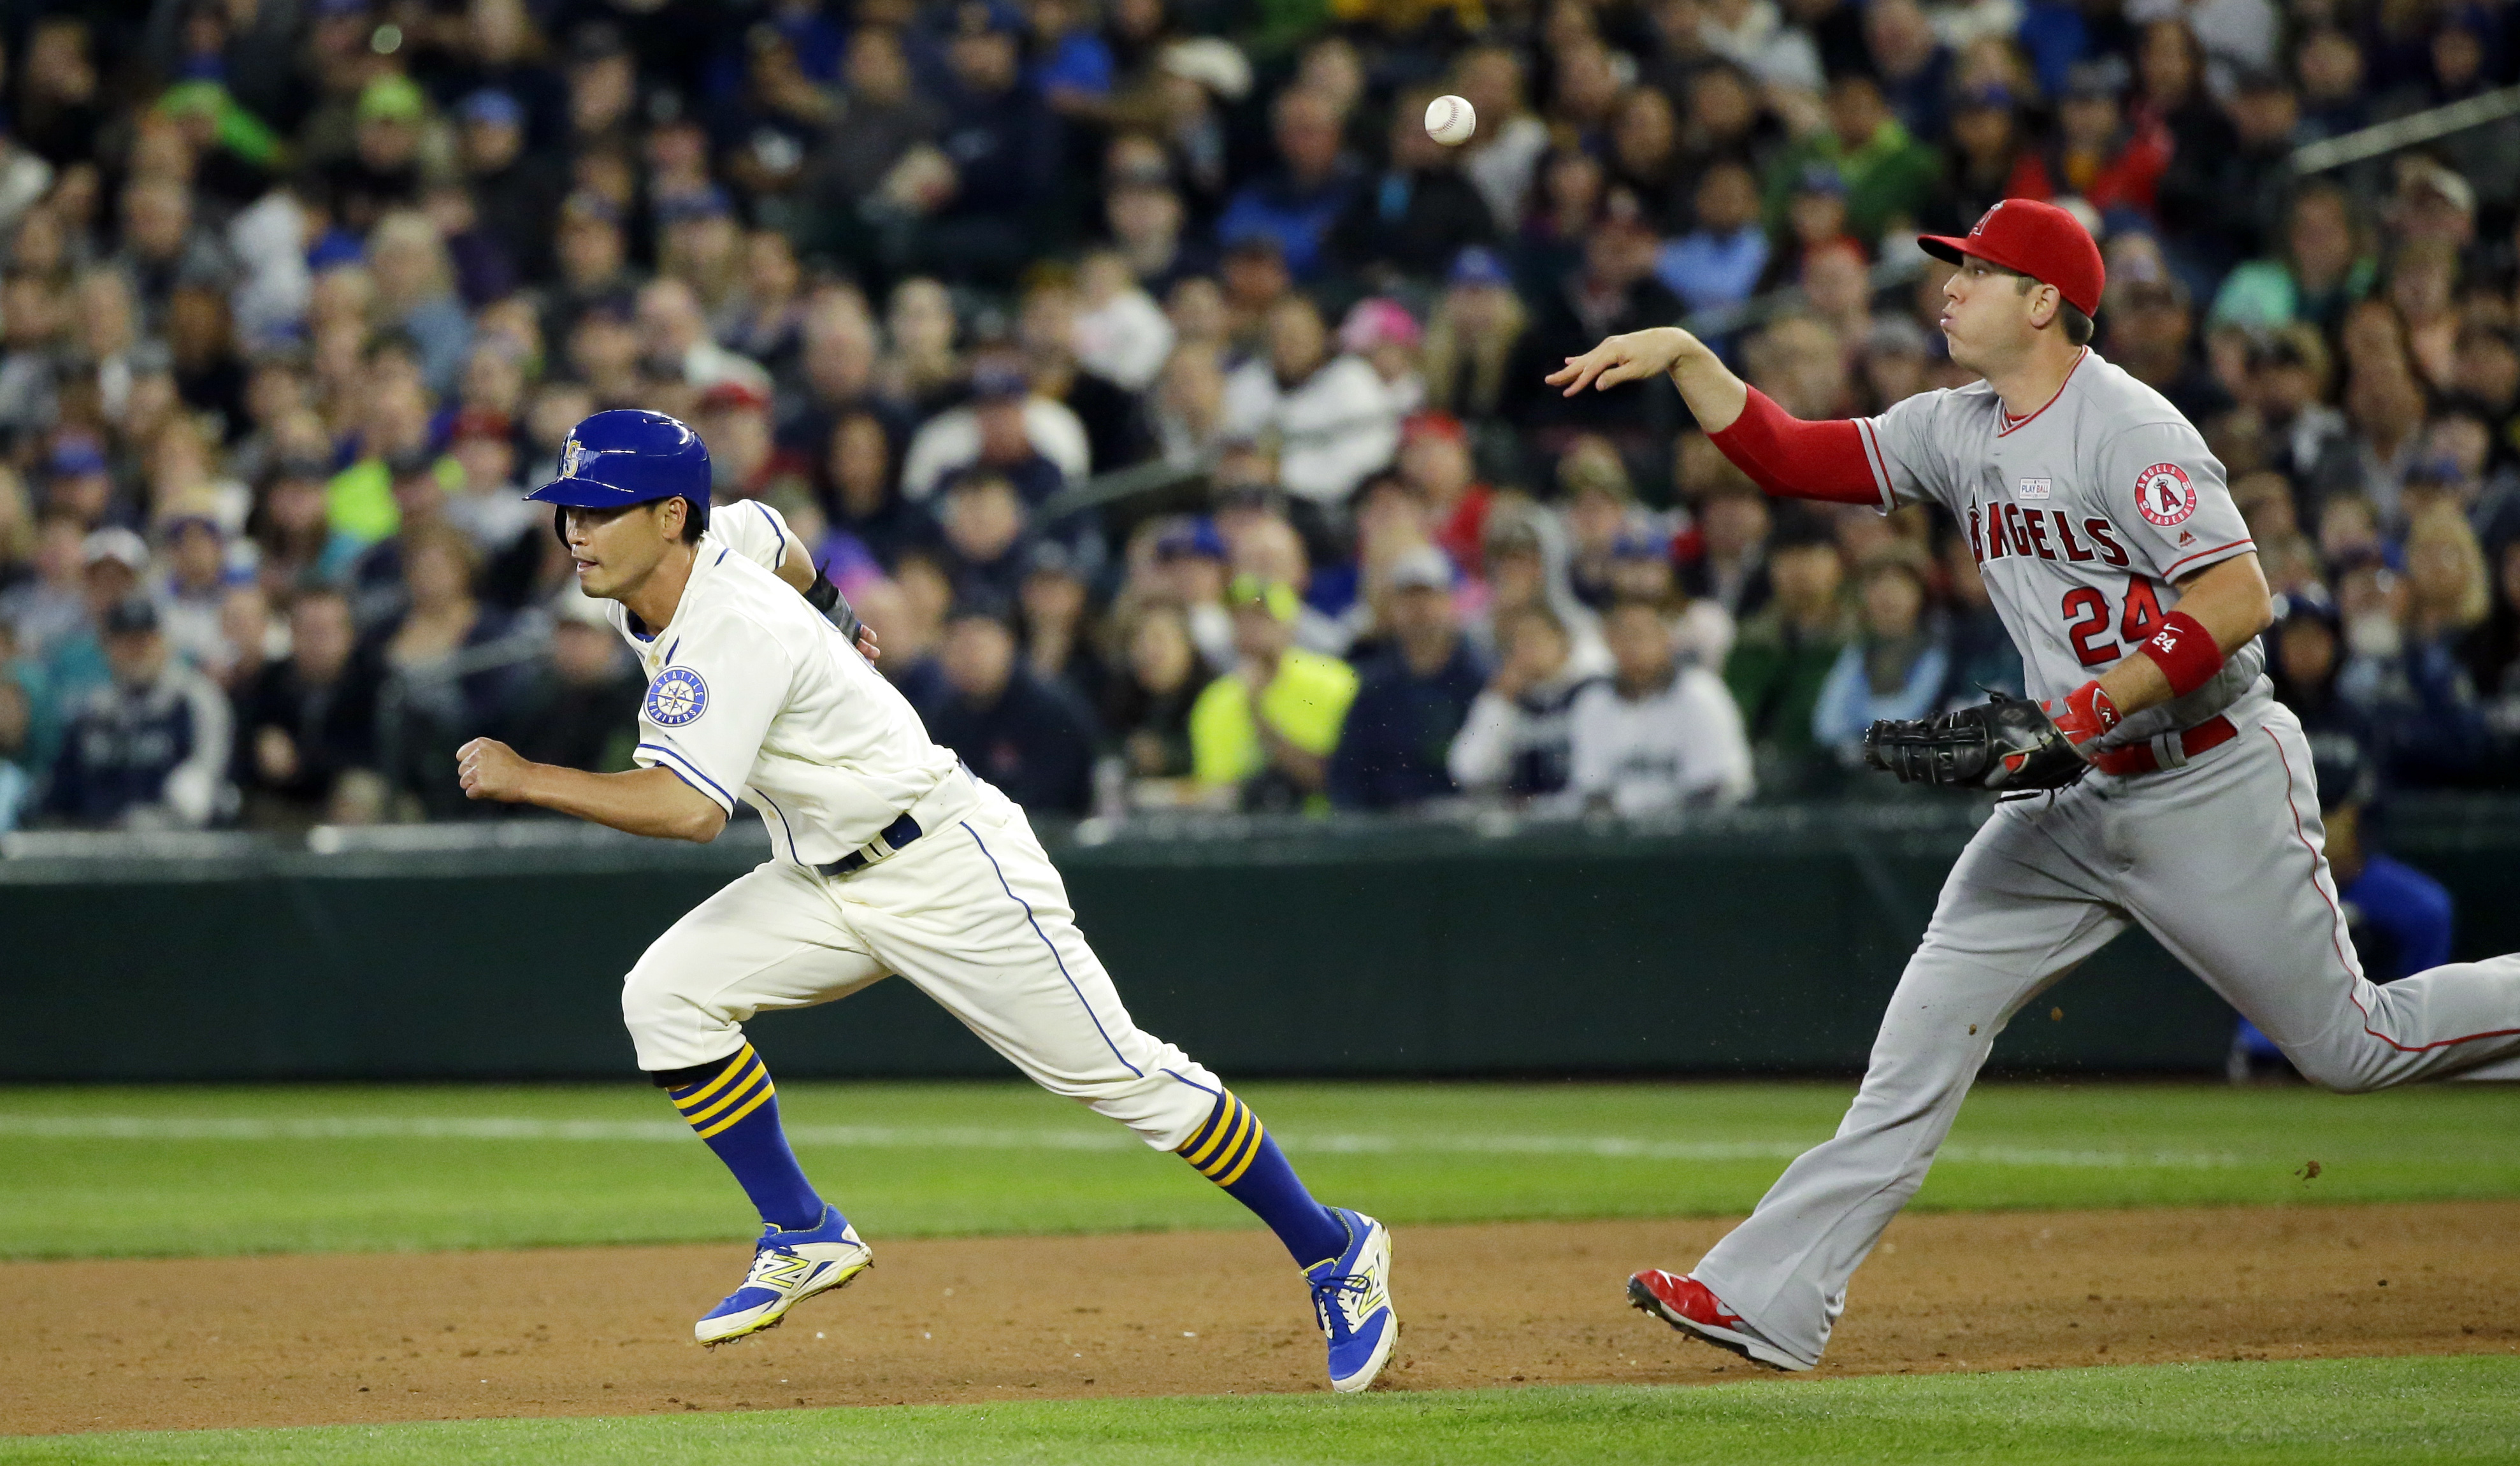 Los Angeles Angels' C.J. Cron, right, throws to Angels' Gregorio Peti to get Seattle Mariners' Norichika Aoki, left, out in a rundown as Aoki attempts to steal second base in the sixth inning of a baseball game, Sunday, May 15, 2016, in Seattle. (AP Photo